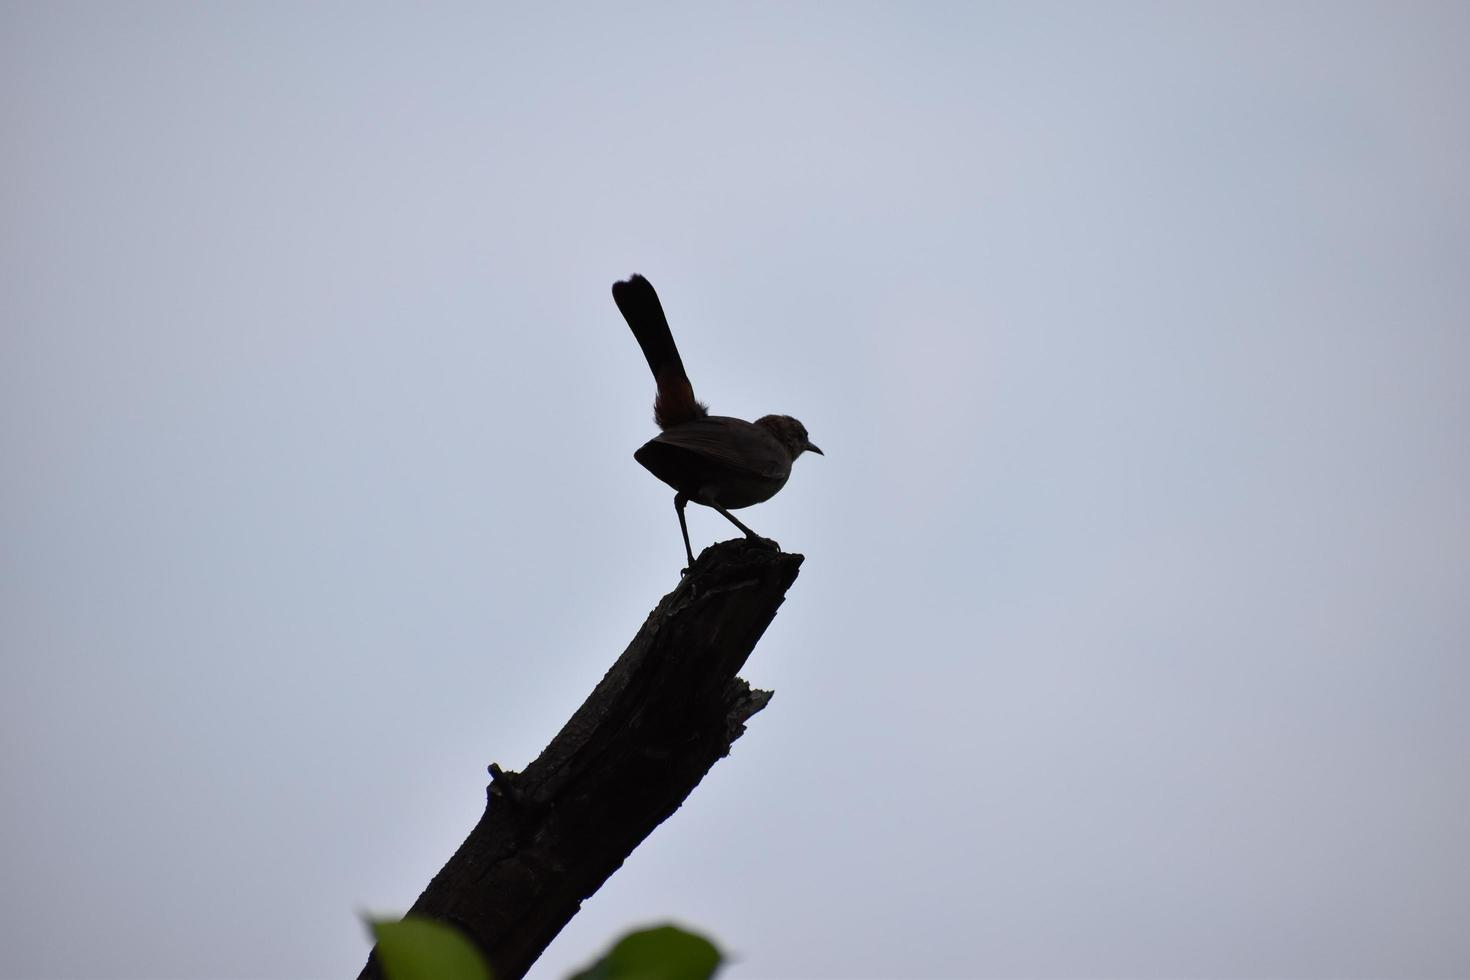 Silhouette of a bird perched on a tree branch photo